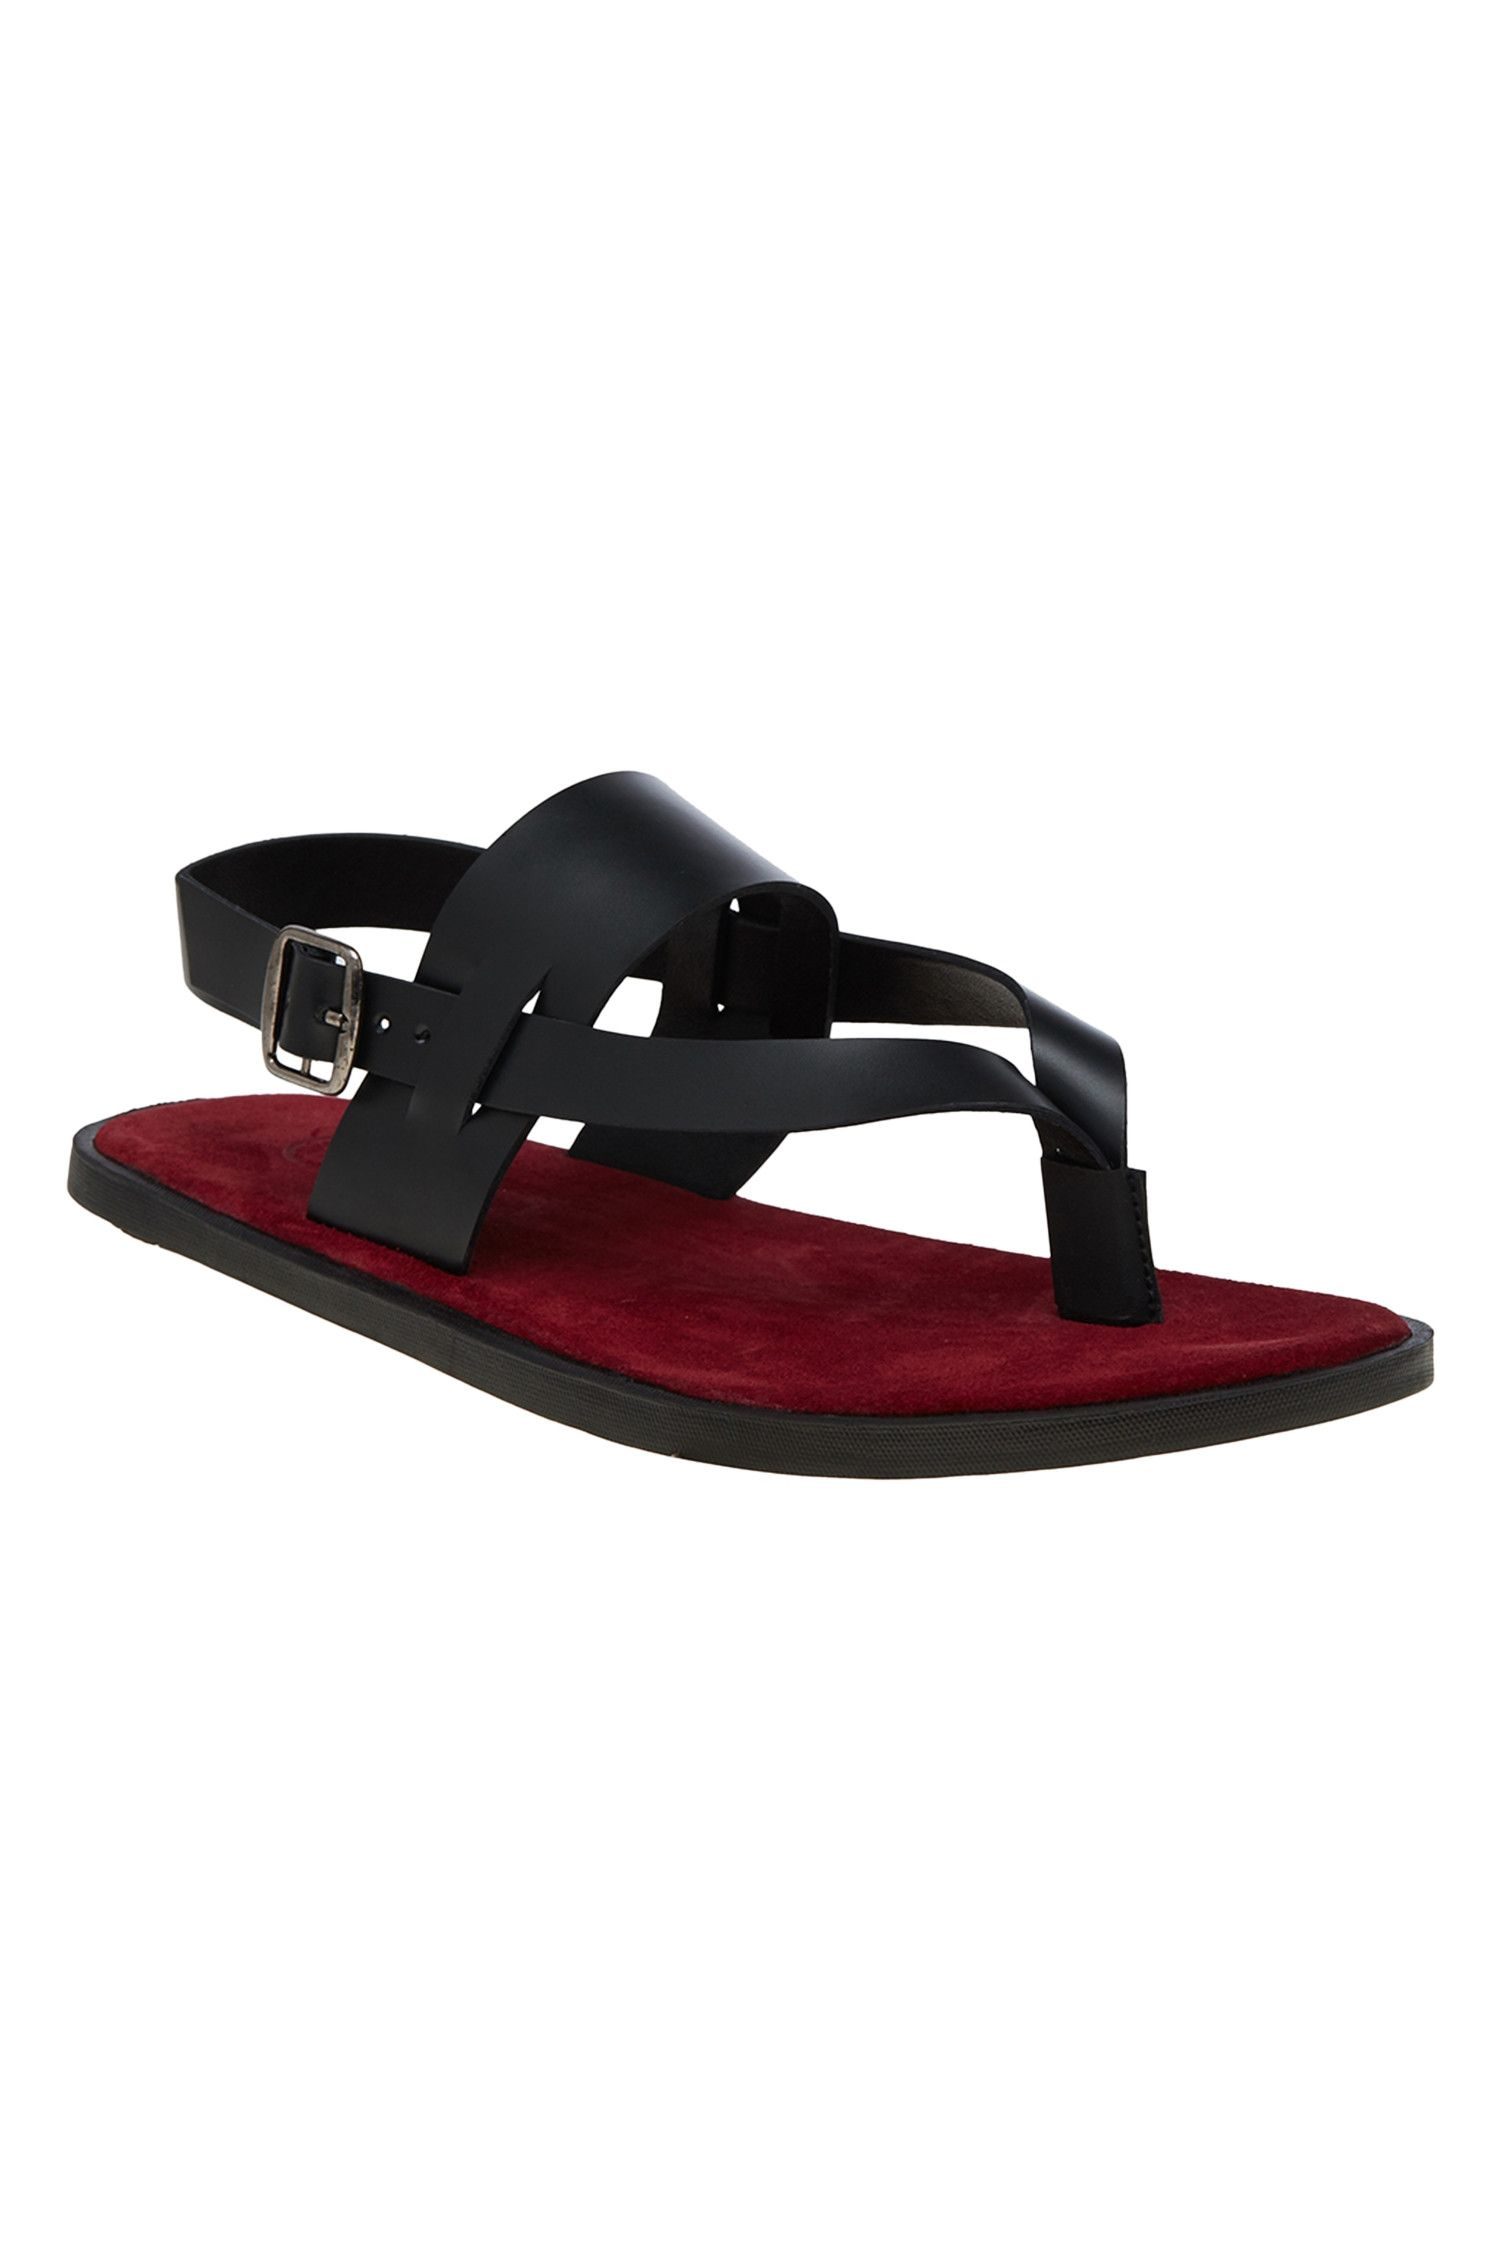 889f1884aa8 Buy Dual Hued Sandals by SKO at Aza Fashions